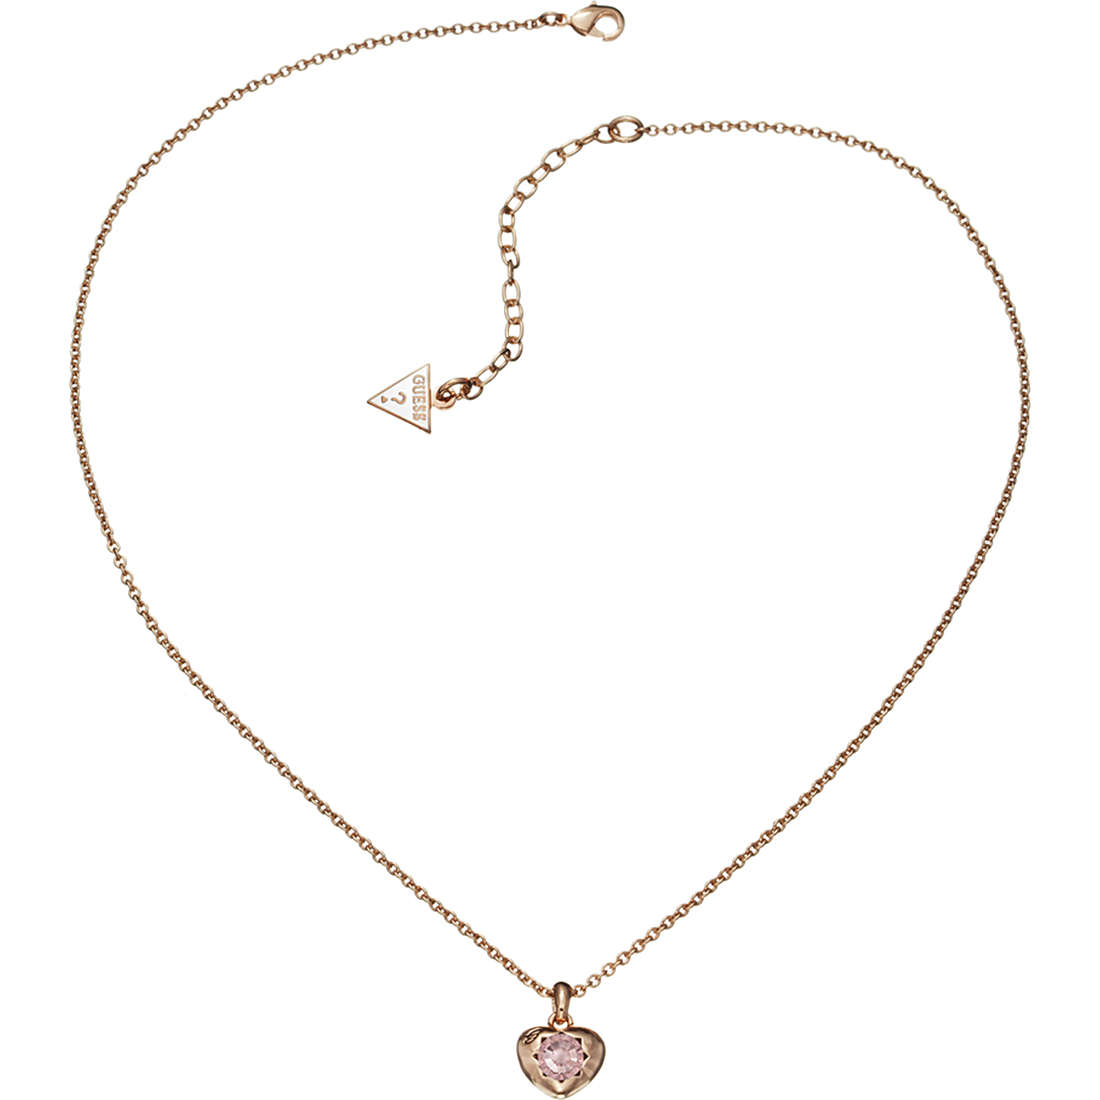 Necklace Woman Jewellery Guess Rose Gold Ubn21564 Necklaces Guess